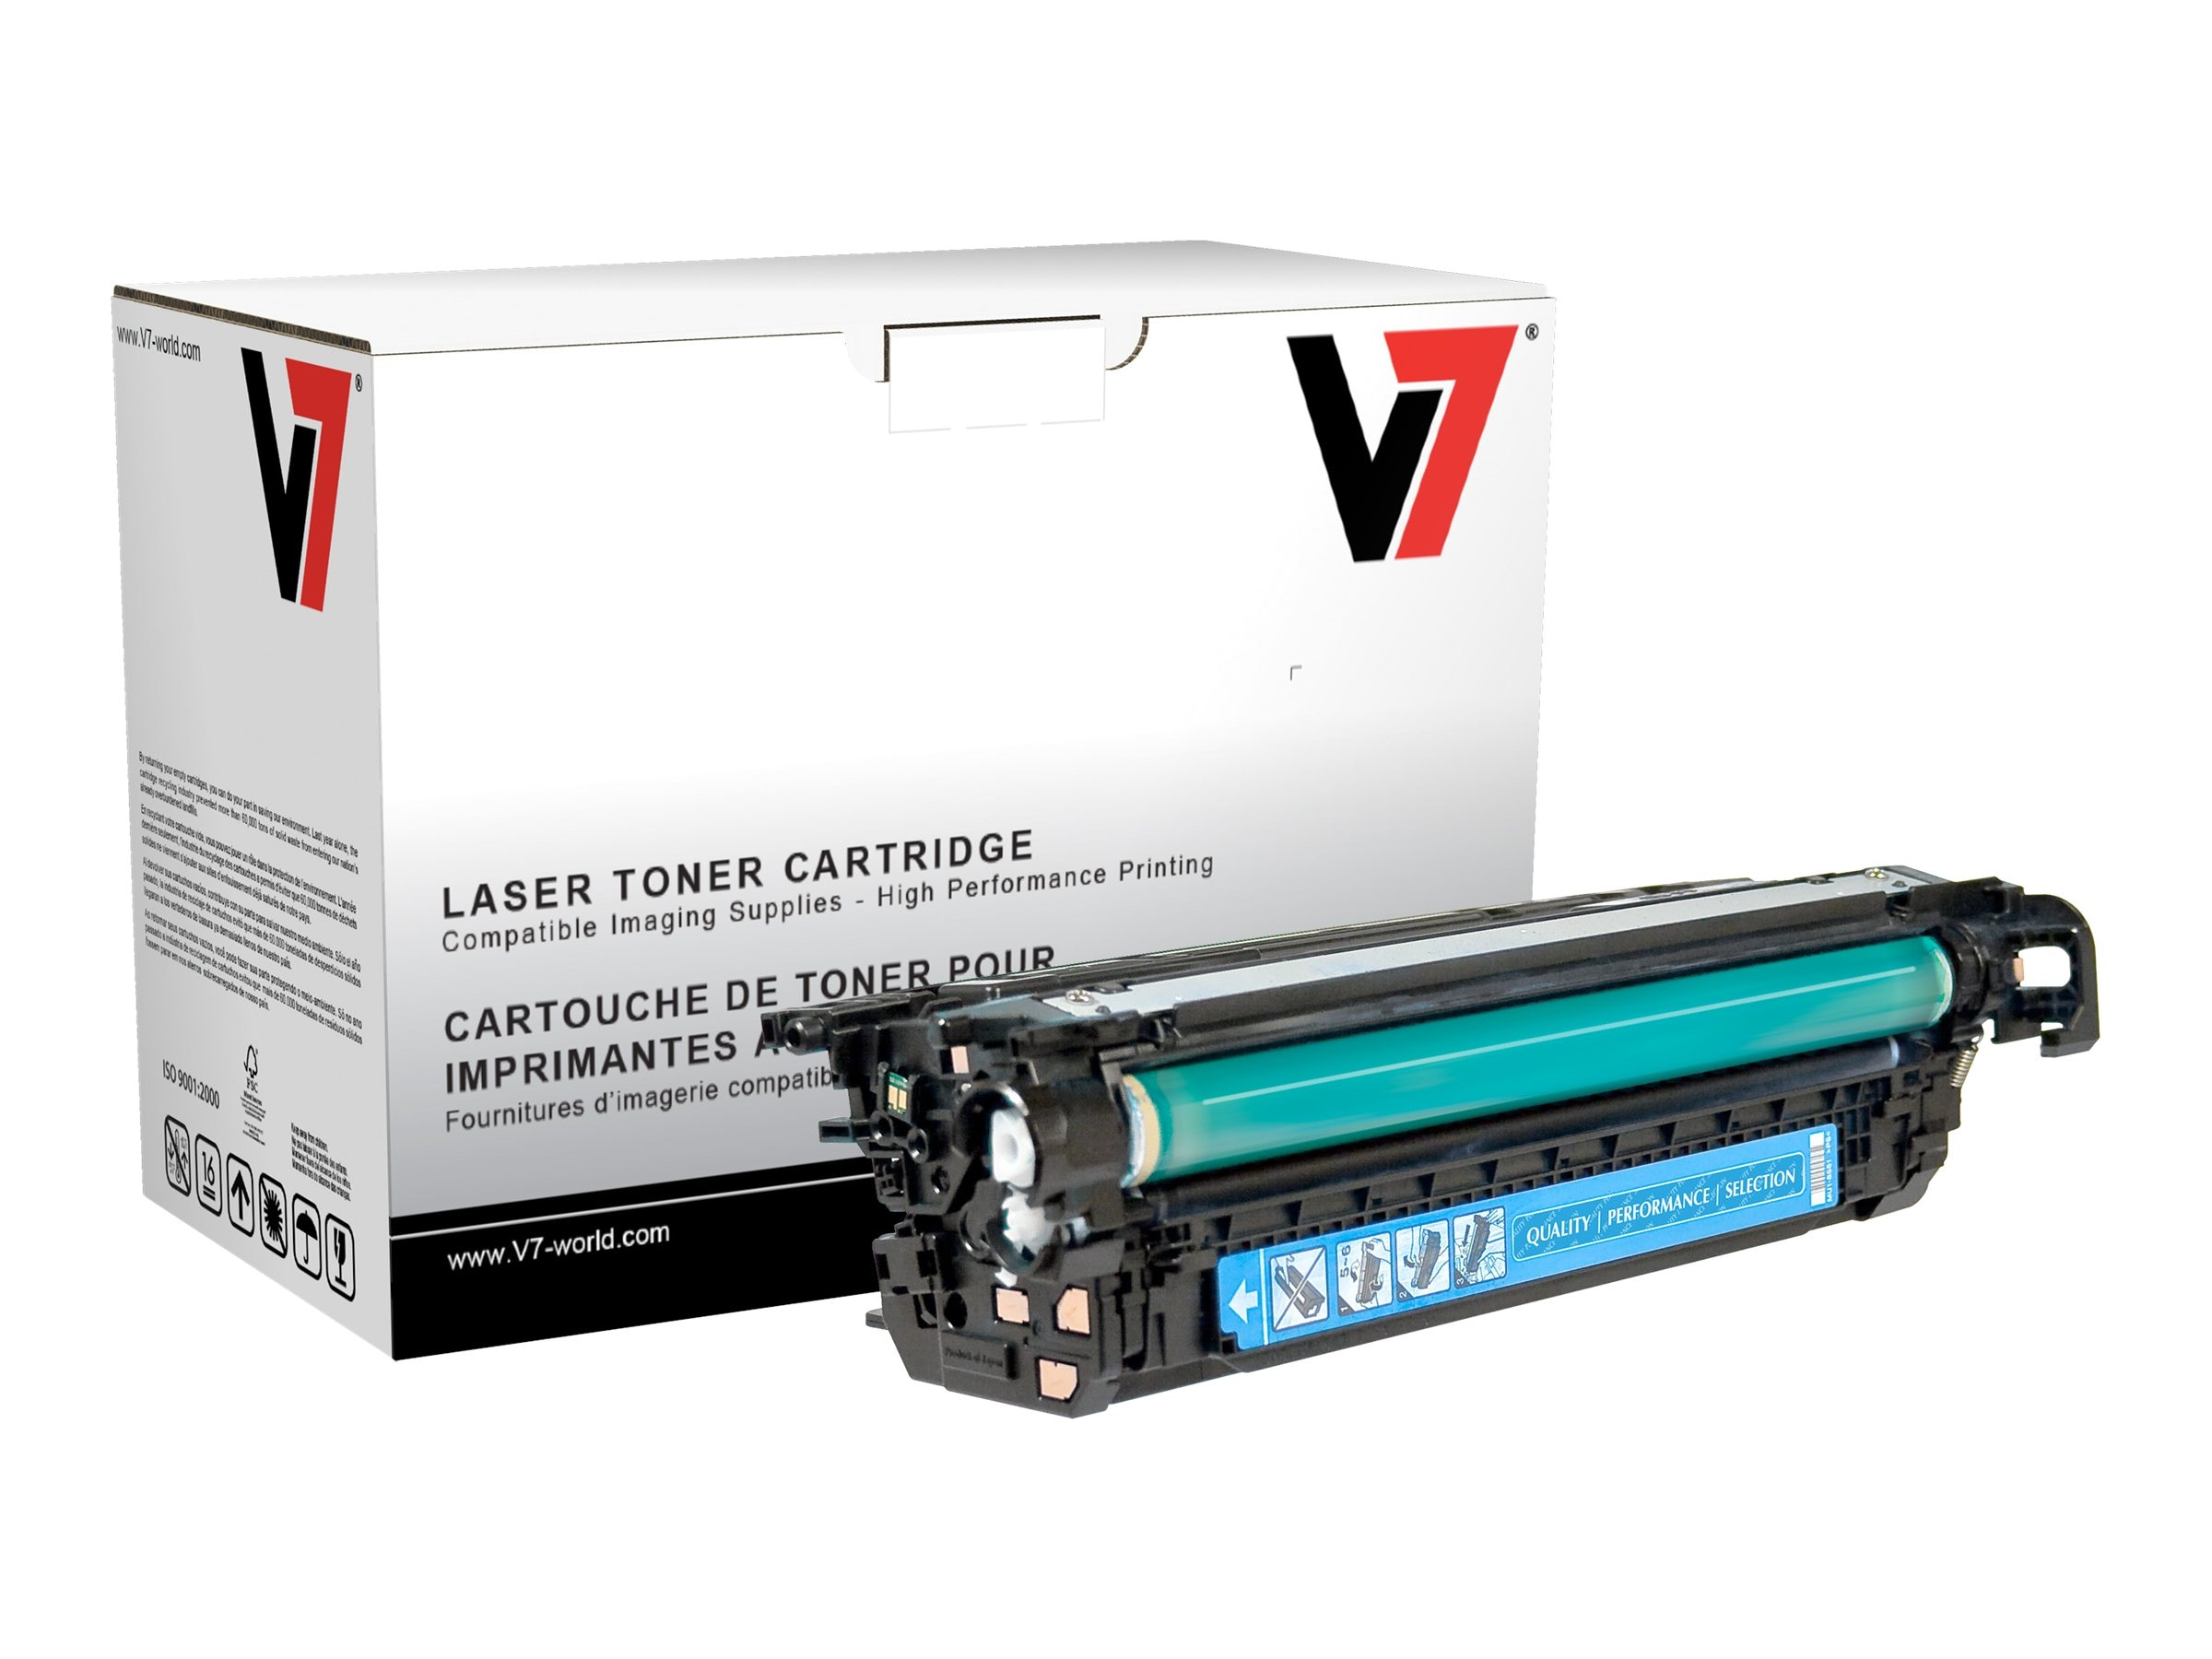 V7 CE261A Cyan Toner Cartridge for HP LaserJet CP4025 4525 (TAA Compliant), THC2261A, 13715064, Toner and Imaging Components